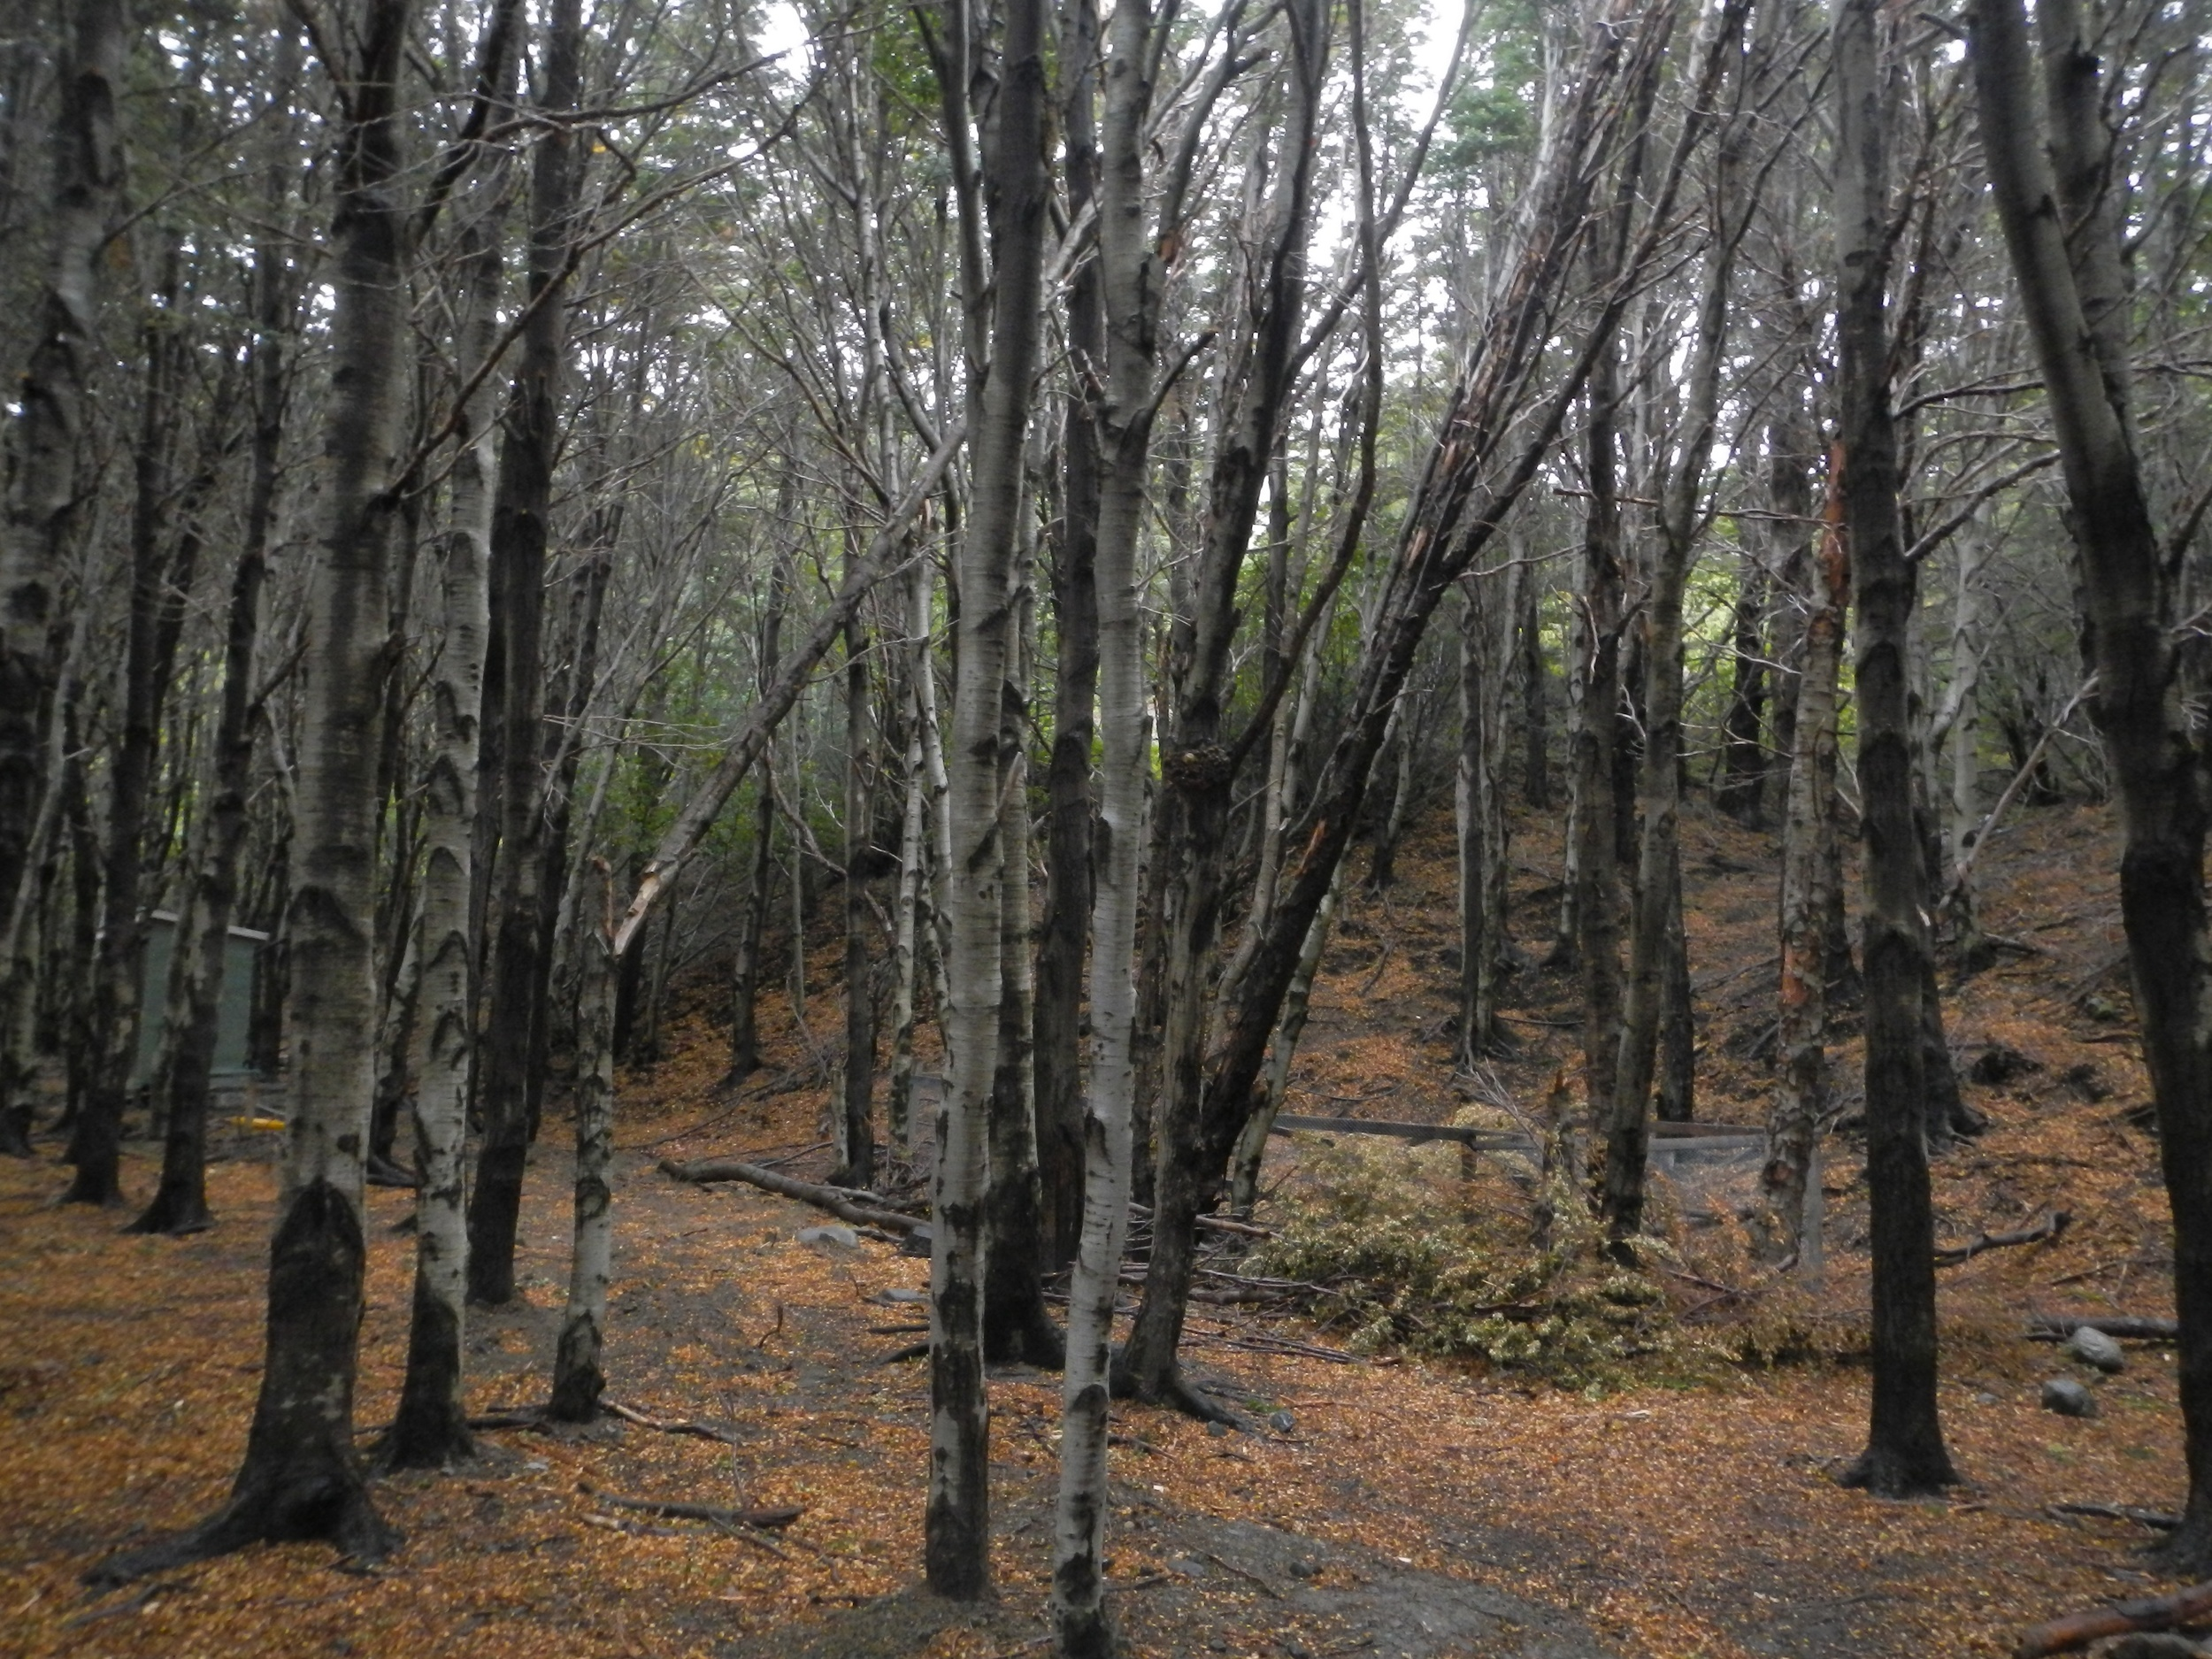 Burnt forest, Torres del Paine, Patagonia, Chile, 5 Apr 2012